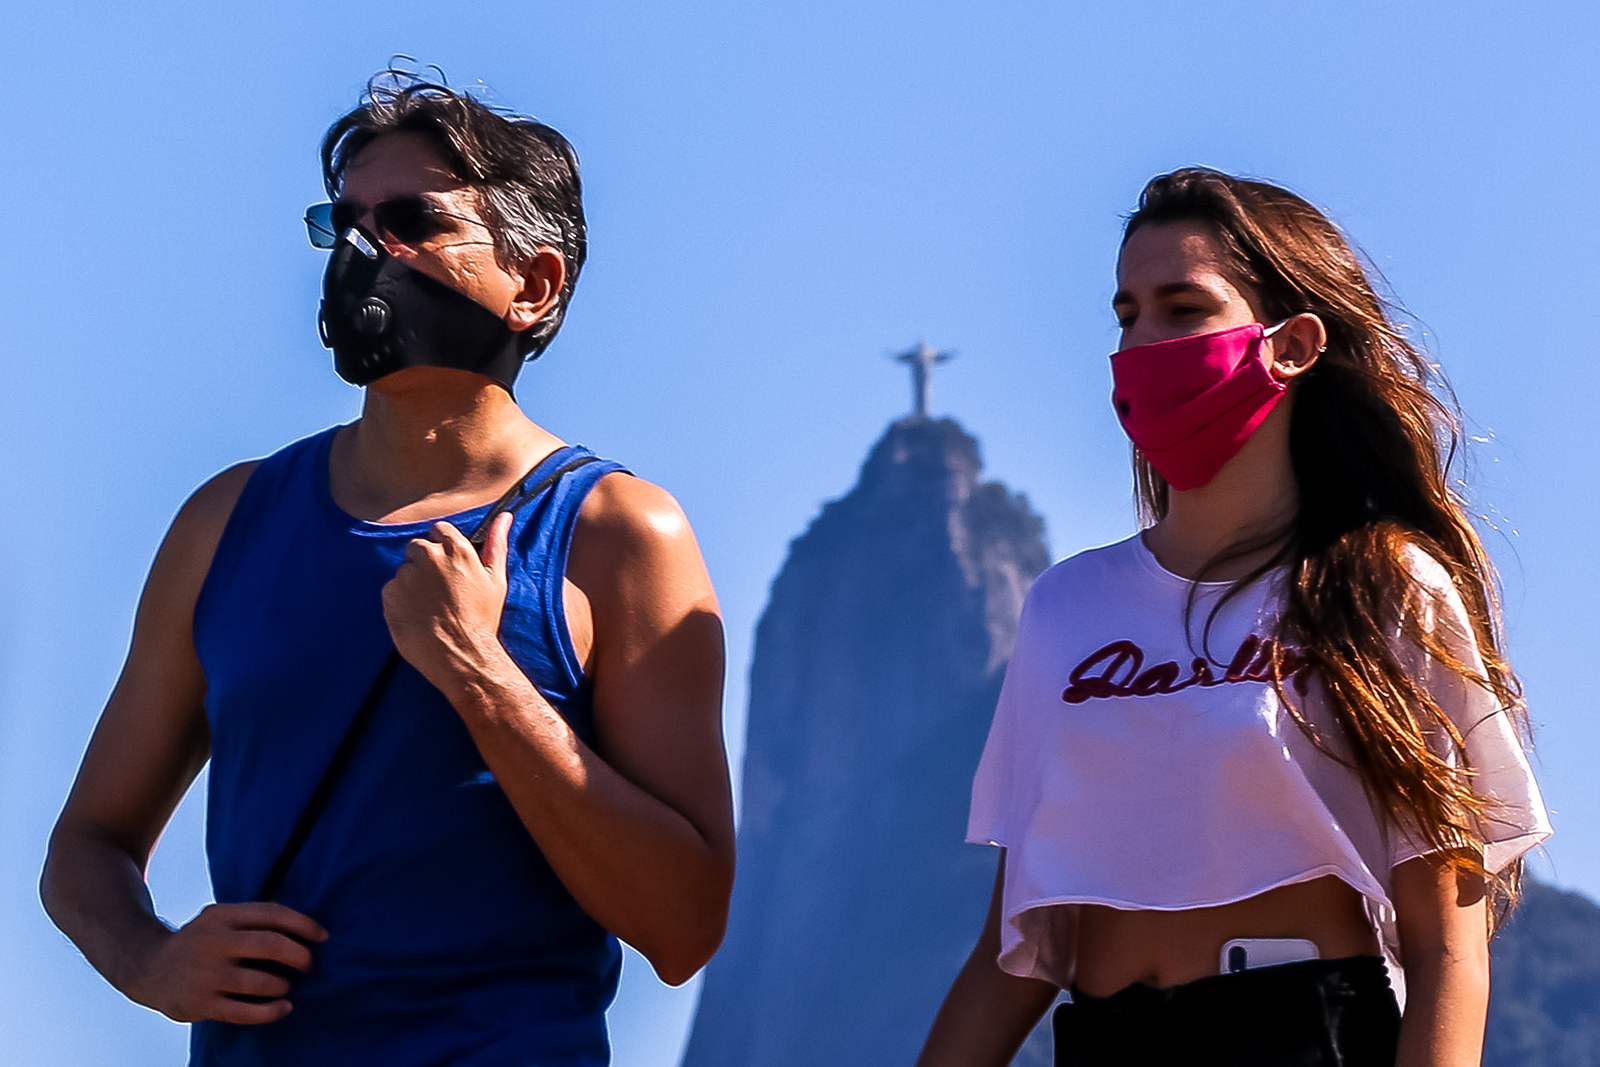 People wearing face masks enjoy the weather at Botafogo Cove, as the Christ the Redeemer statue is seen in the distance, on July 5, in Rio de Janeiro, Brazil.